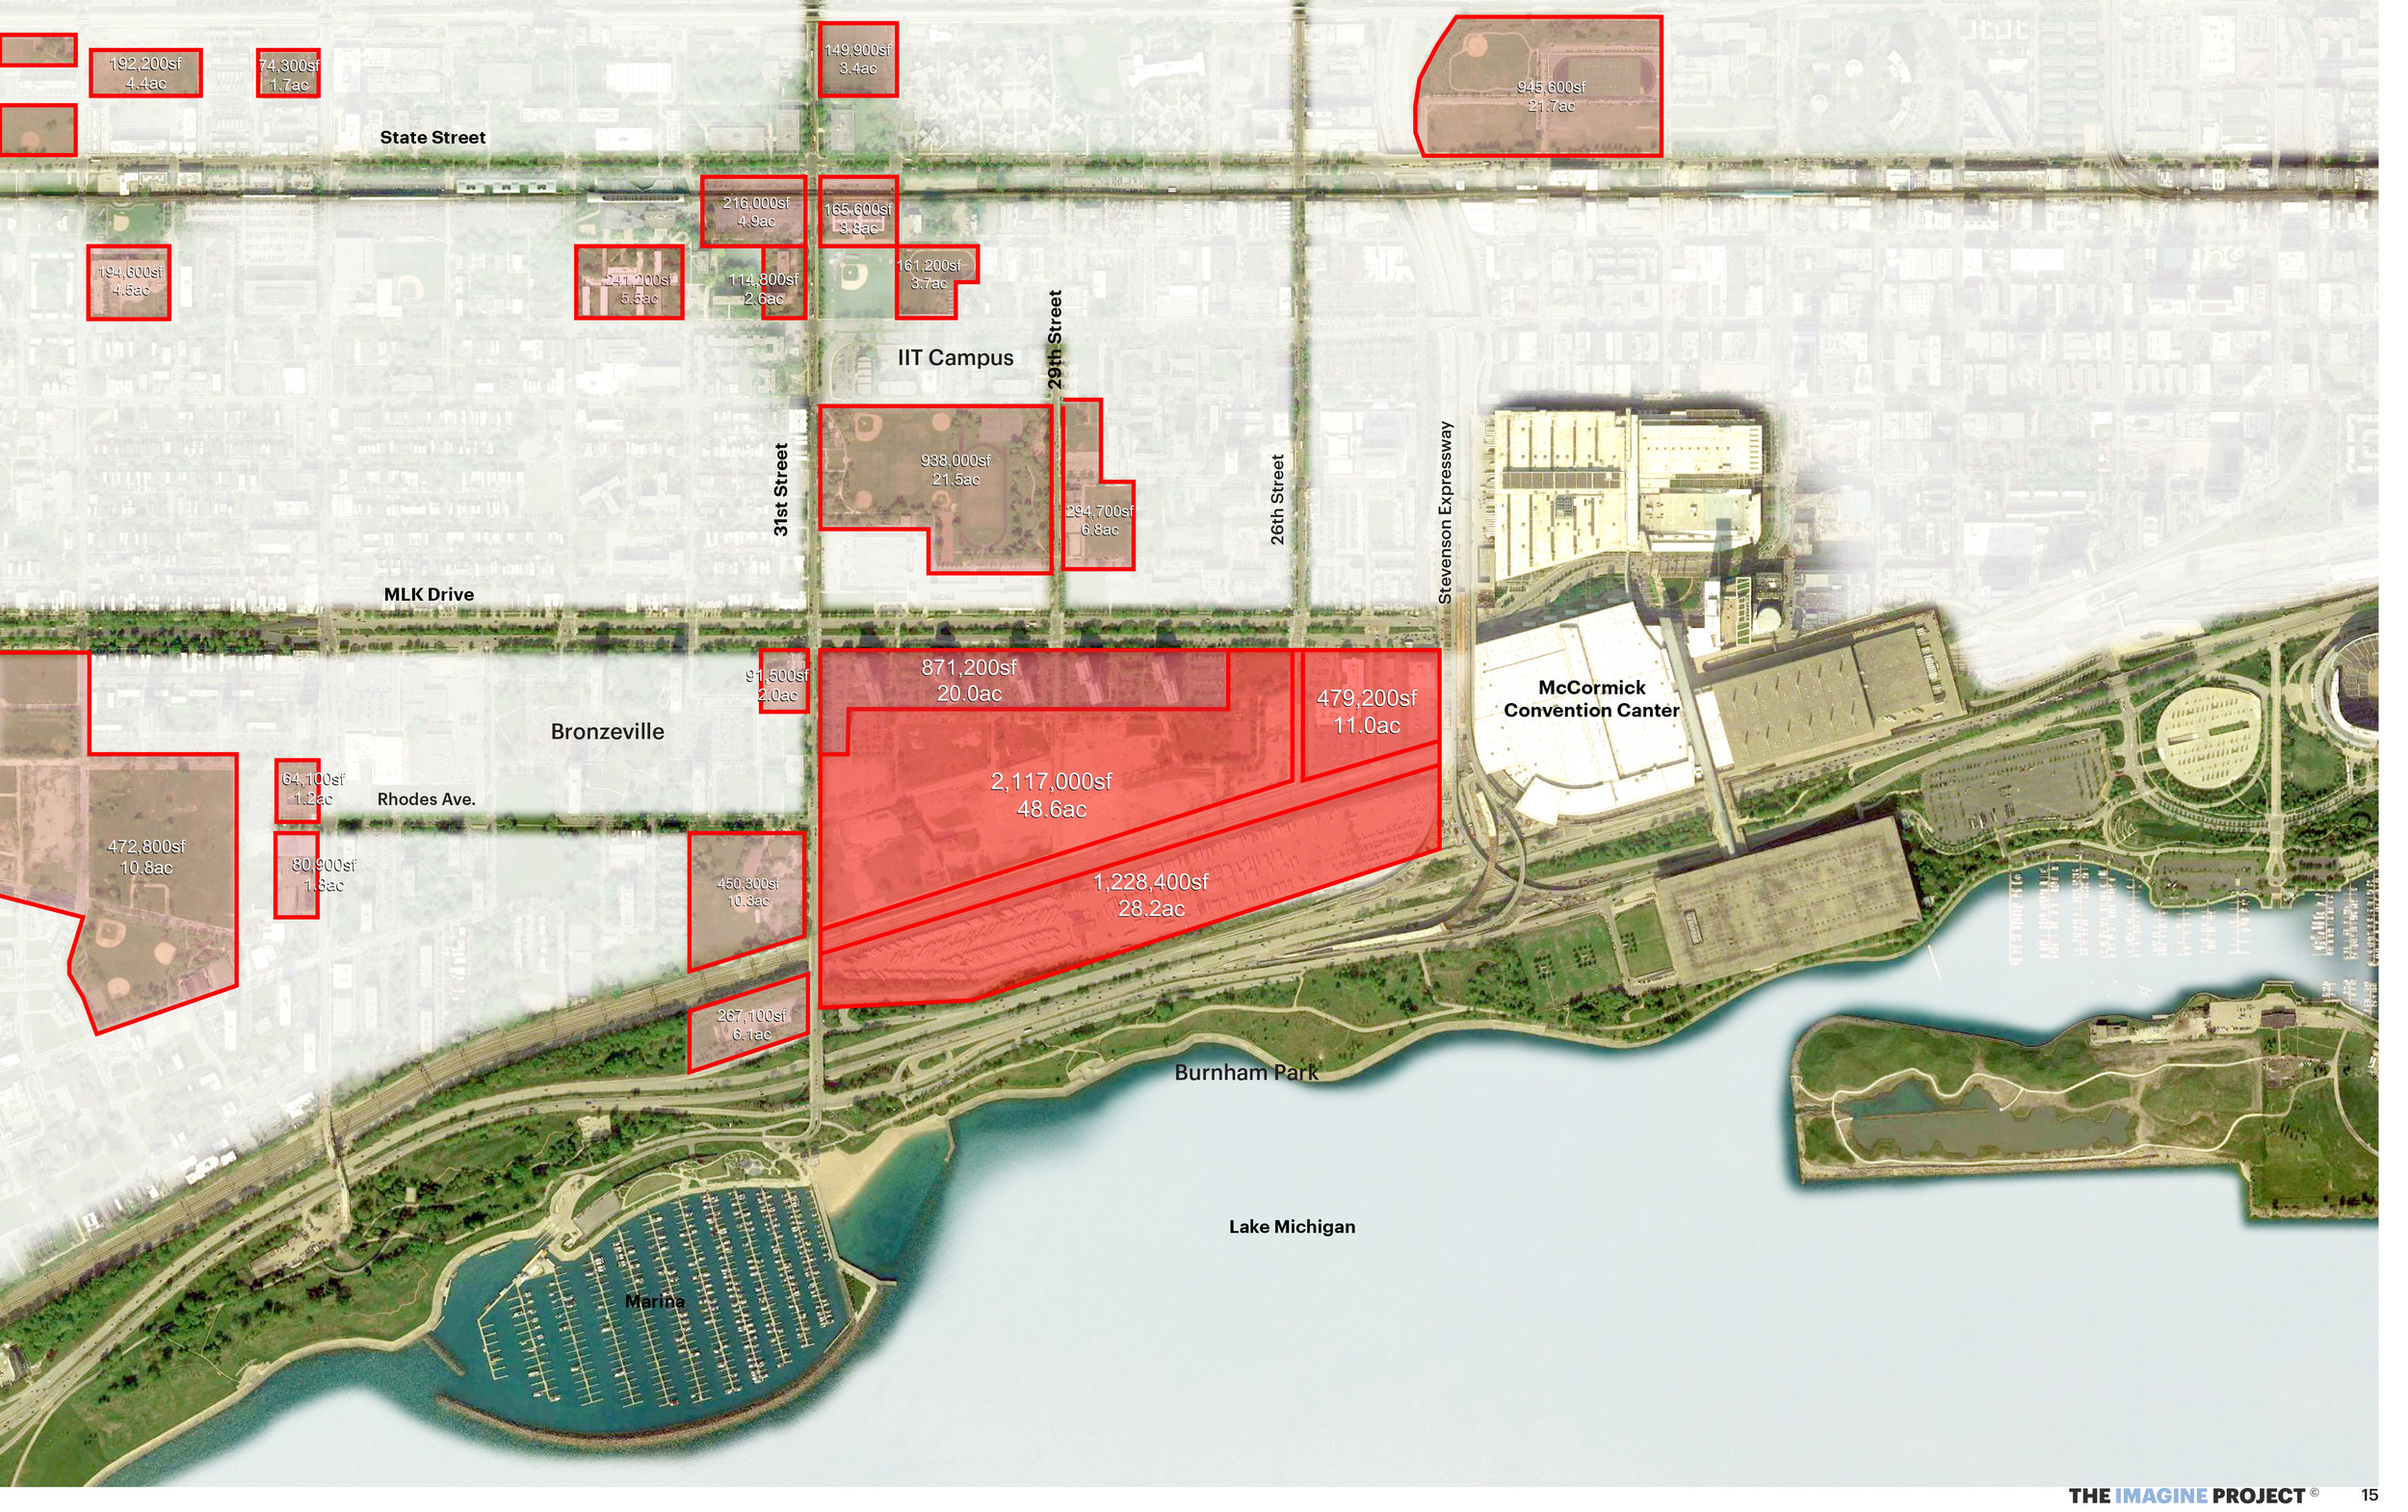 Diagram of the Michael Reese Site as well as well as potential future development locations. The map shows the size of each lot by square foot and acre.